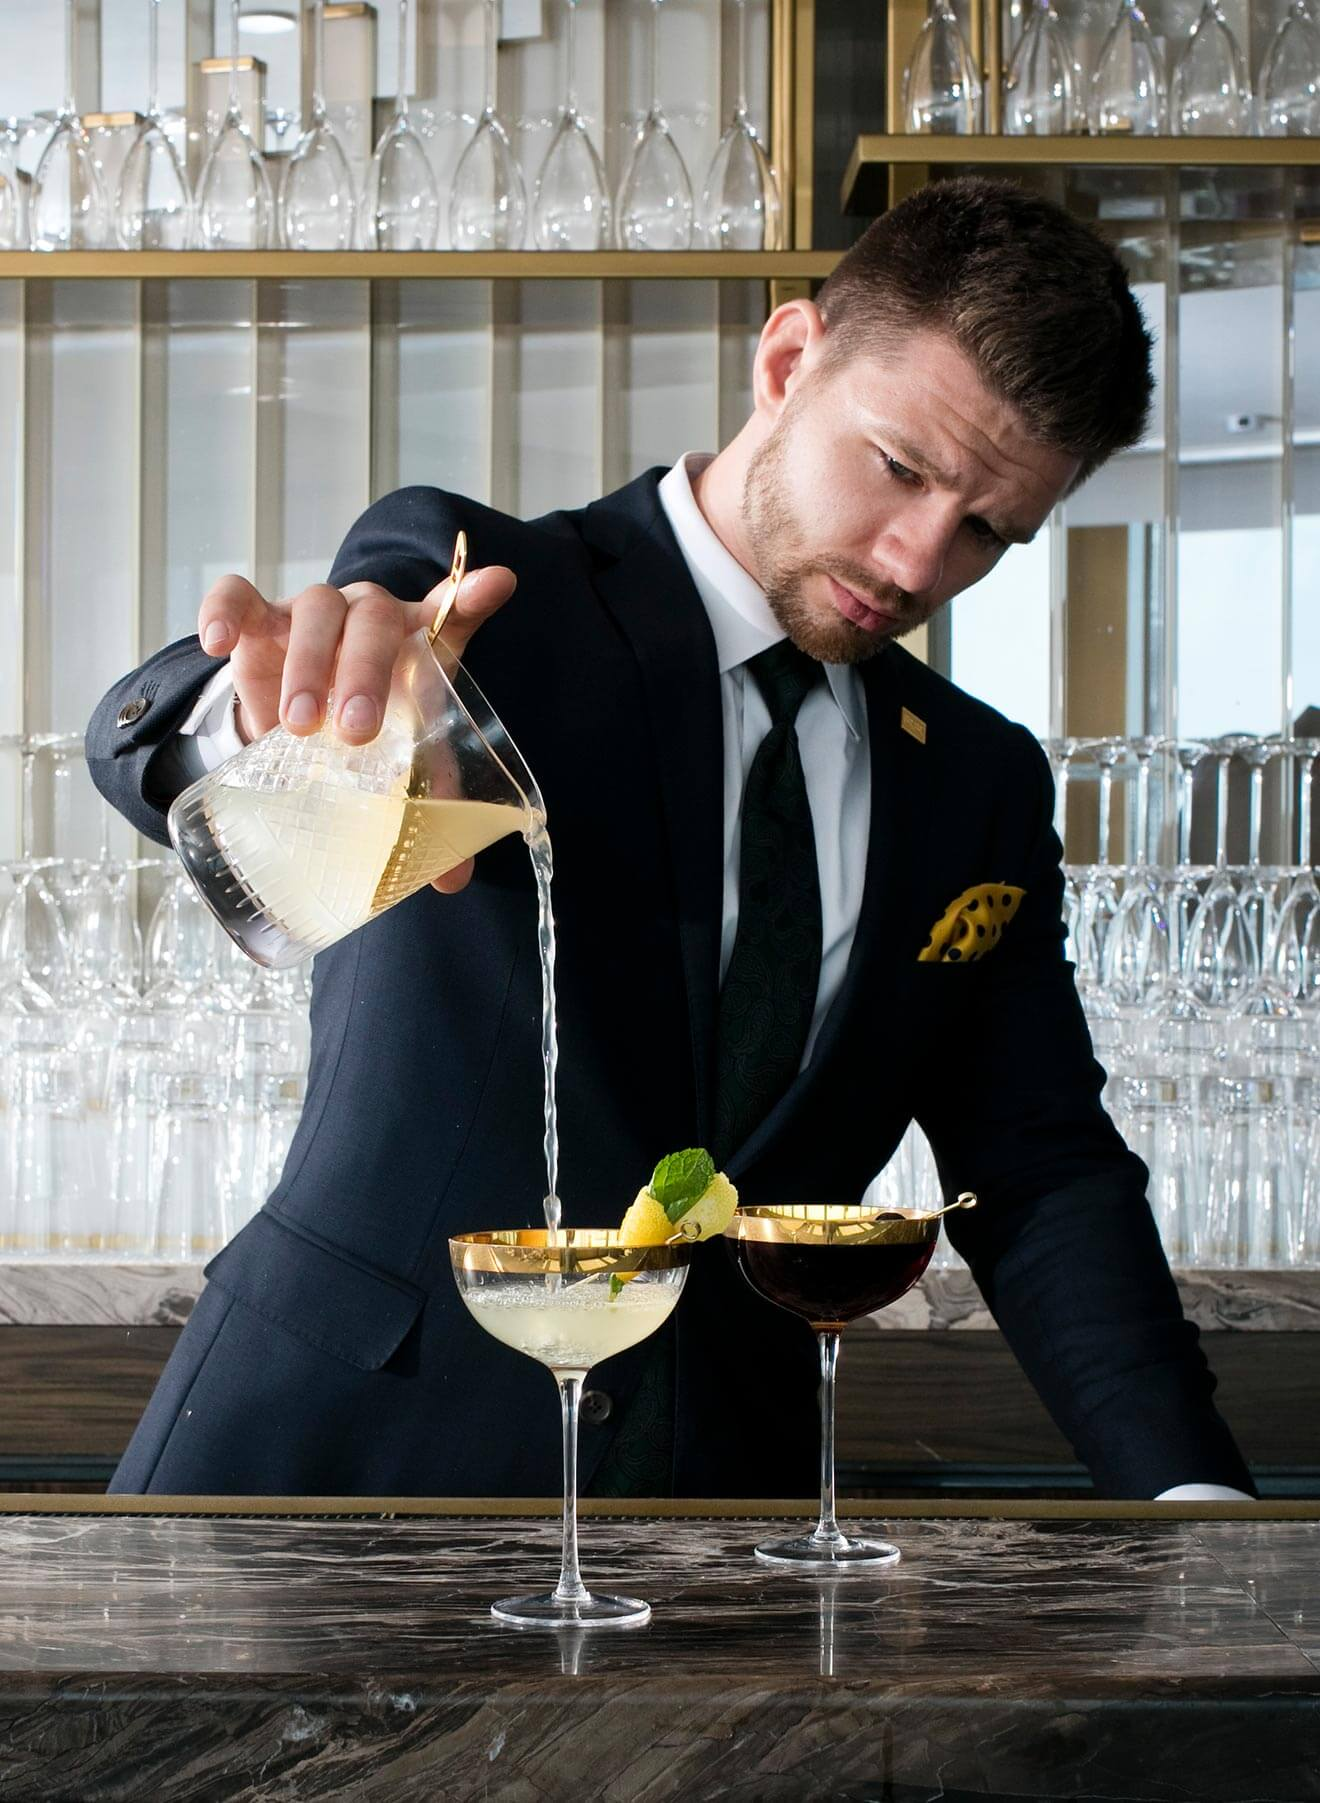 Corey Creason - Chilled 100 Ambassador, New York, pouring his cocktails in style